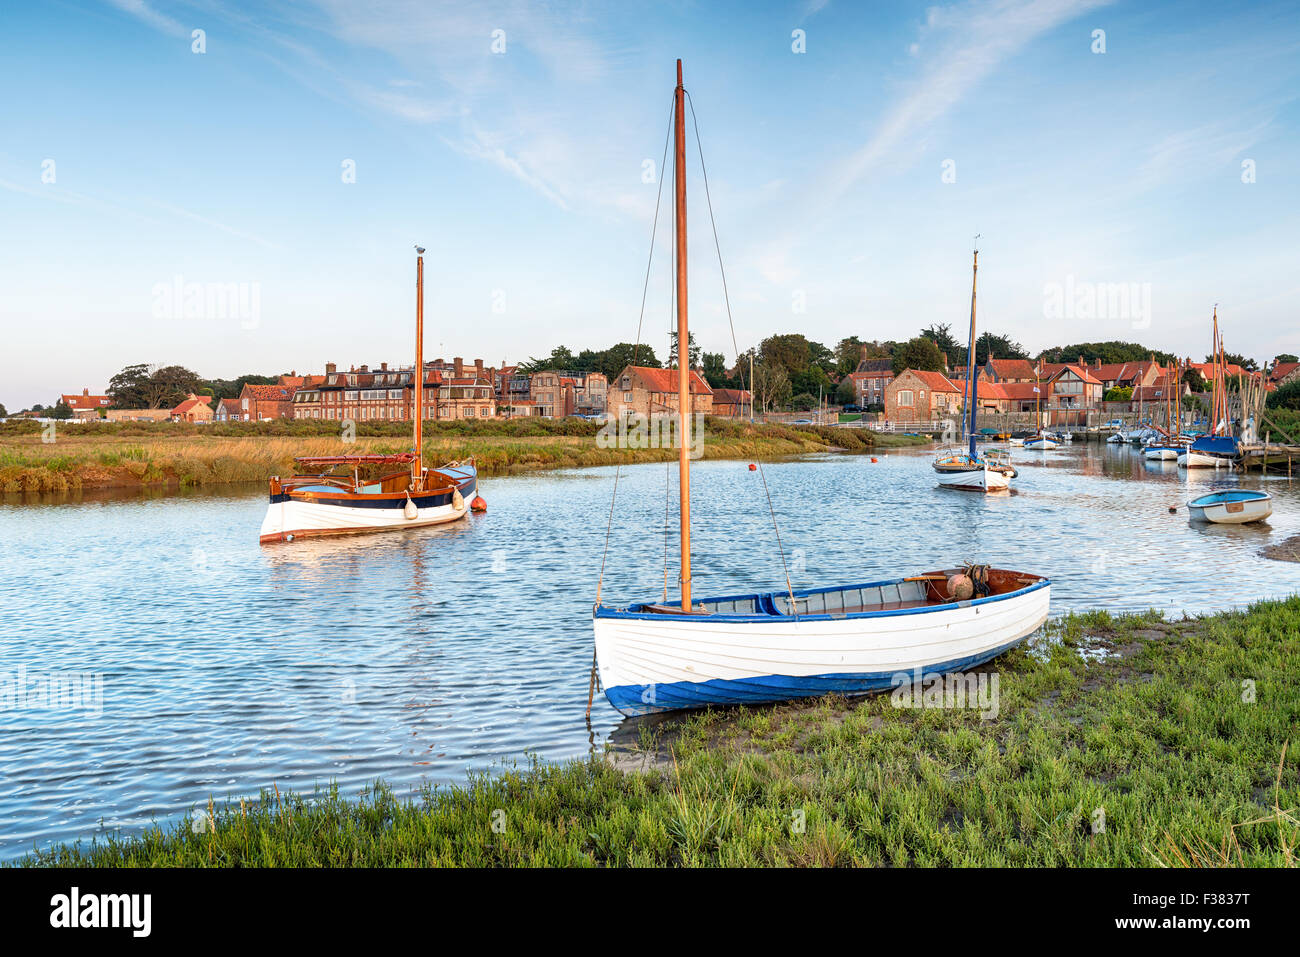 High tide on the salt marshes at Blakeney on the north coast of Norfolk - Stock Image